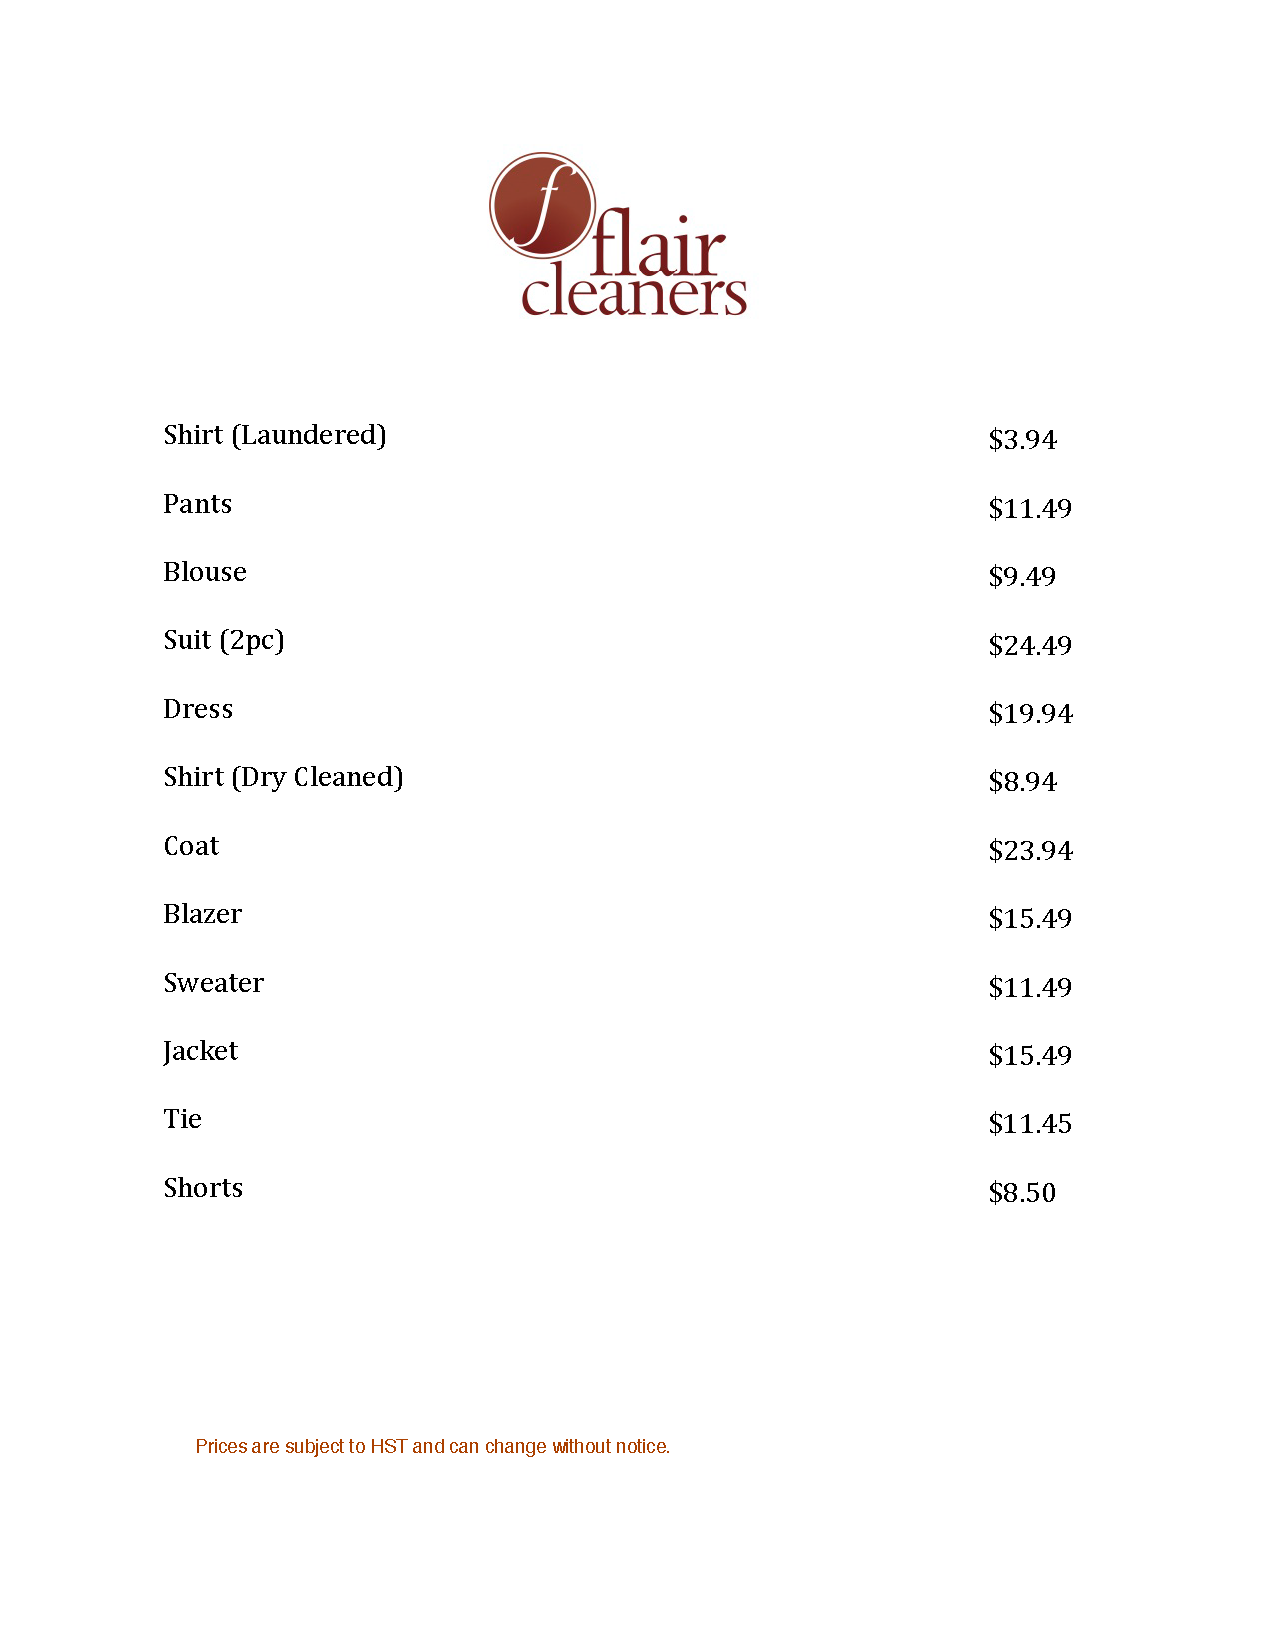 Flair price list 2018_Page_1.png